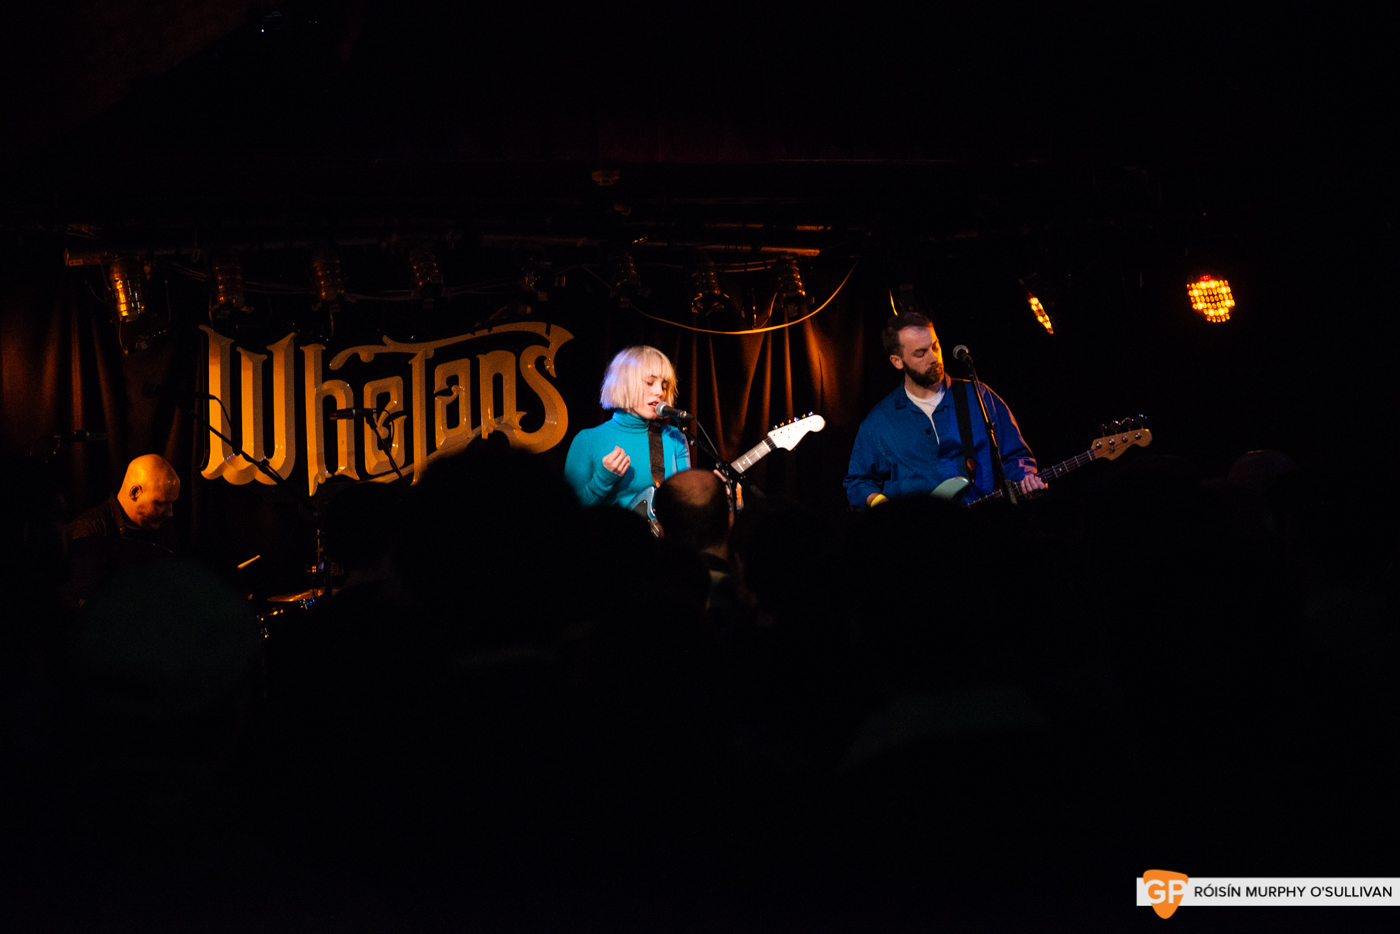 Olympia in Whelans by Roisin Murphy O'Sullivan (1 of 18)